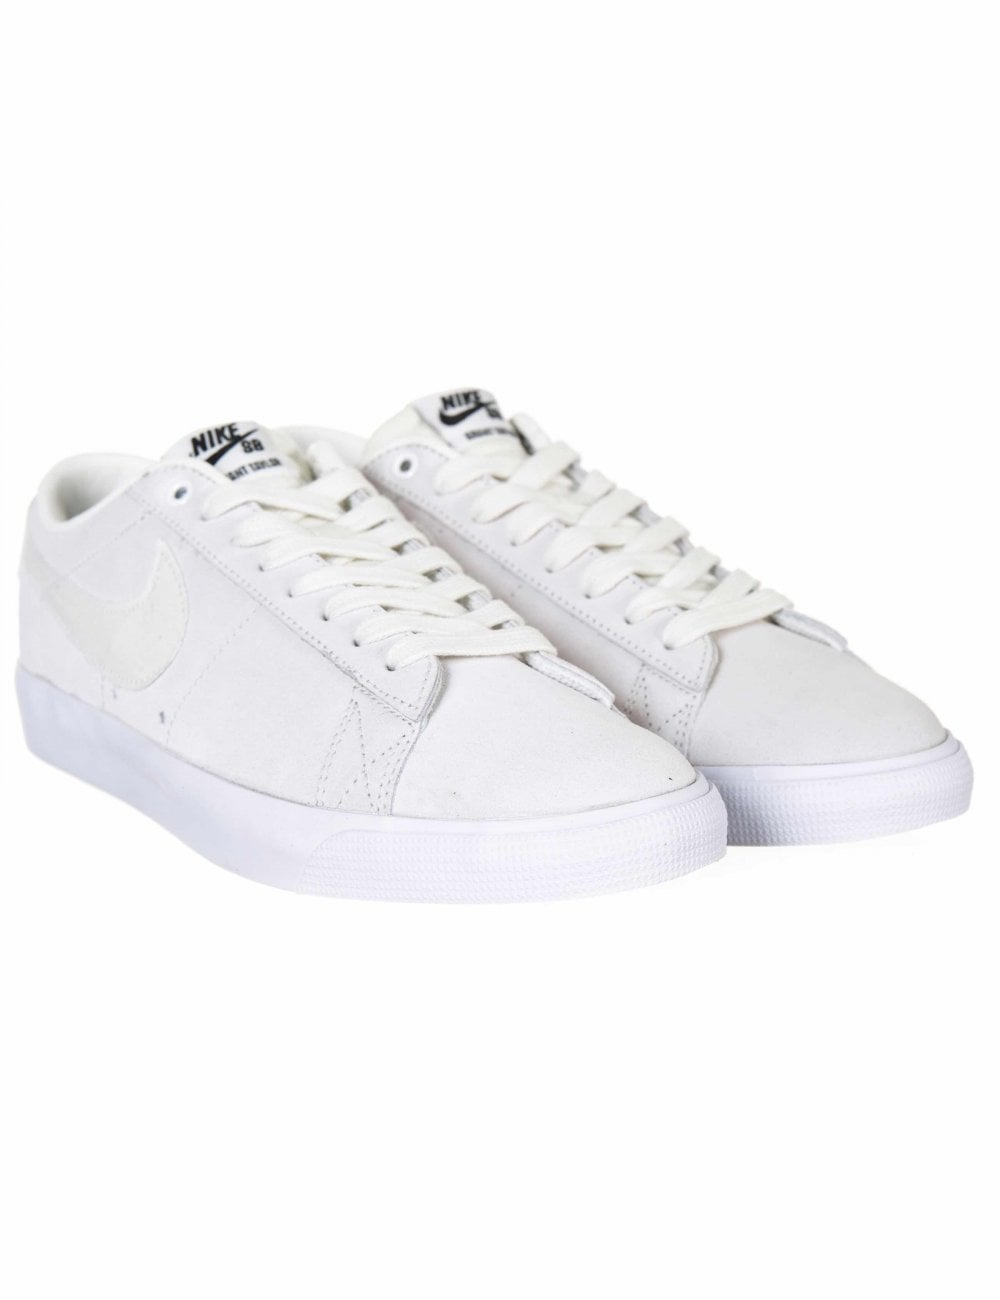 ef602d387c59 Nike SB Zoom Blazer Low GT Shoes - Summit White - Footwear from Fat ...